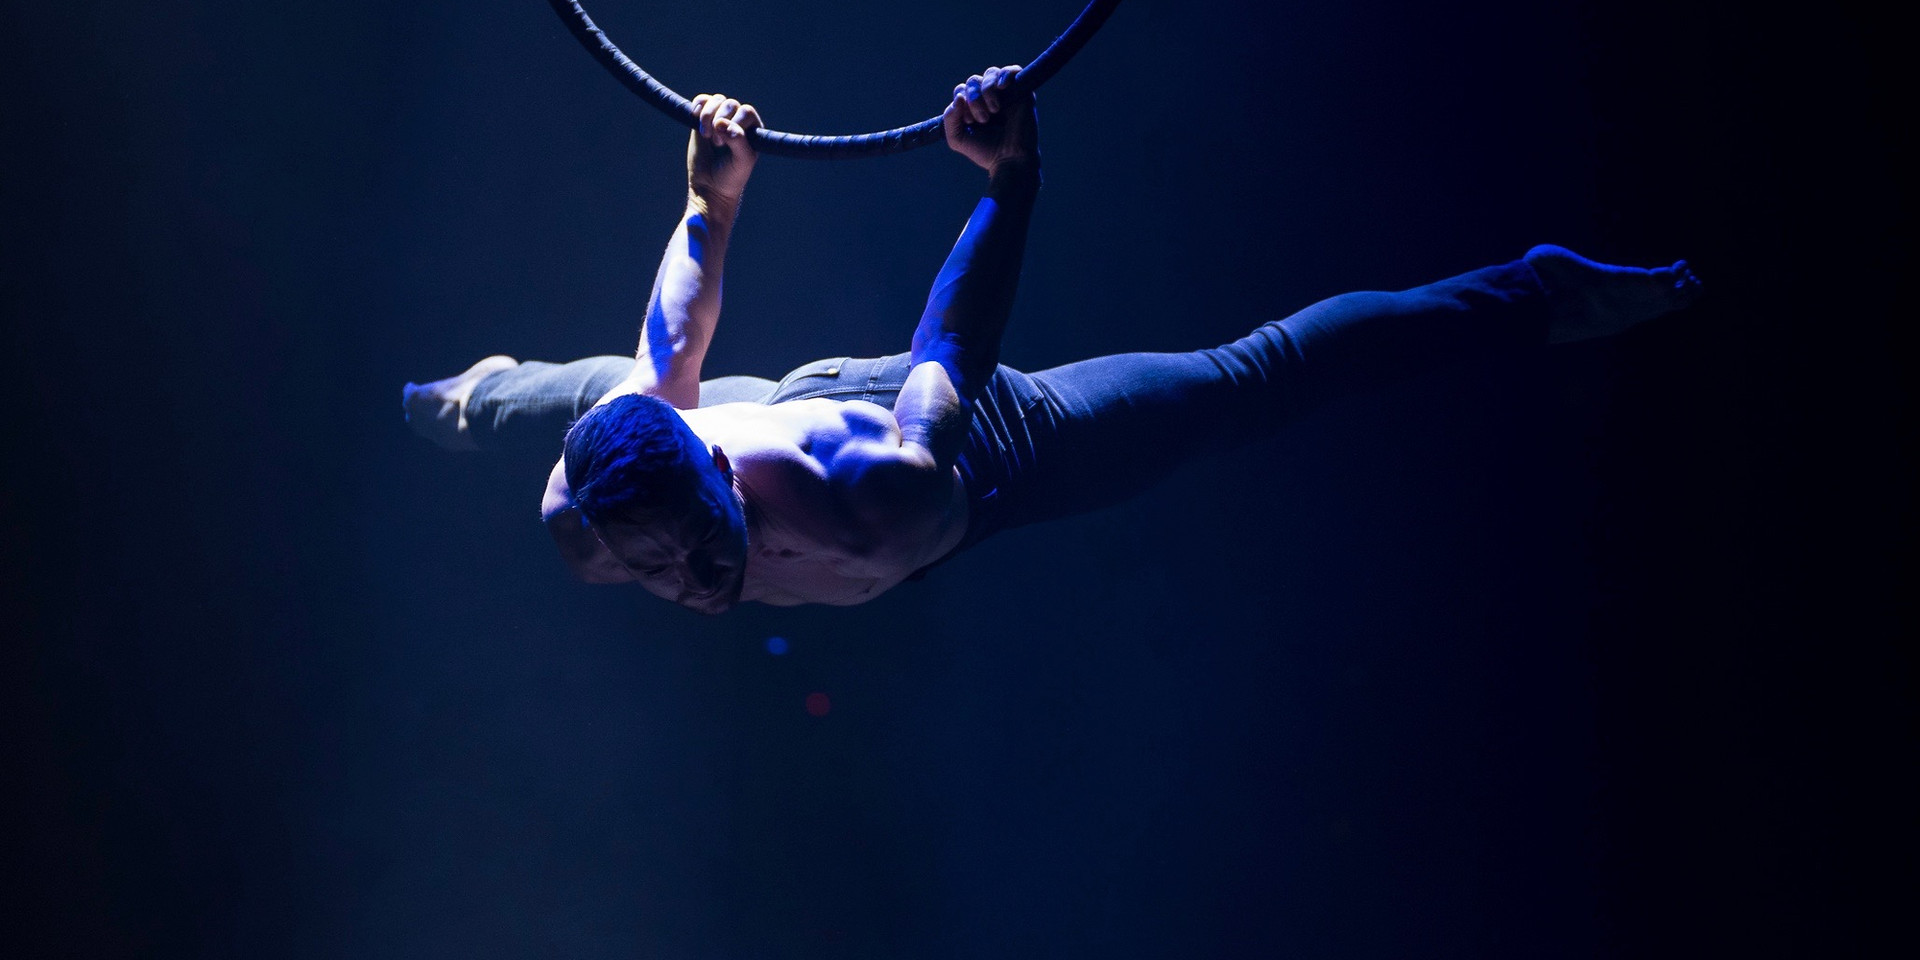 Hire best Aerialists UK